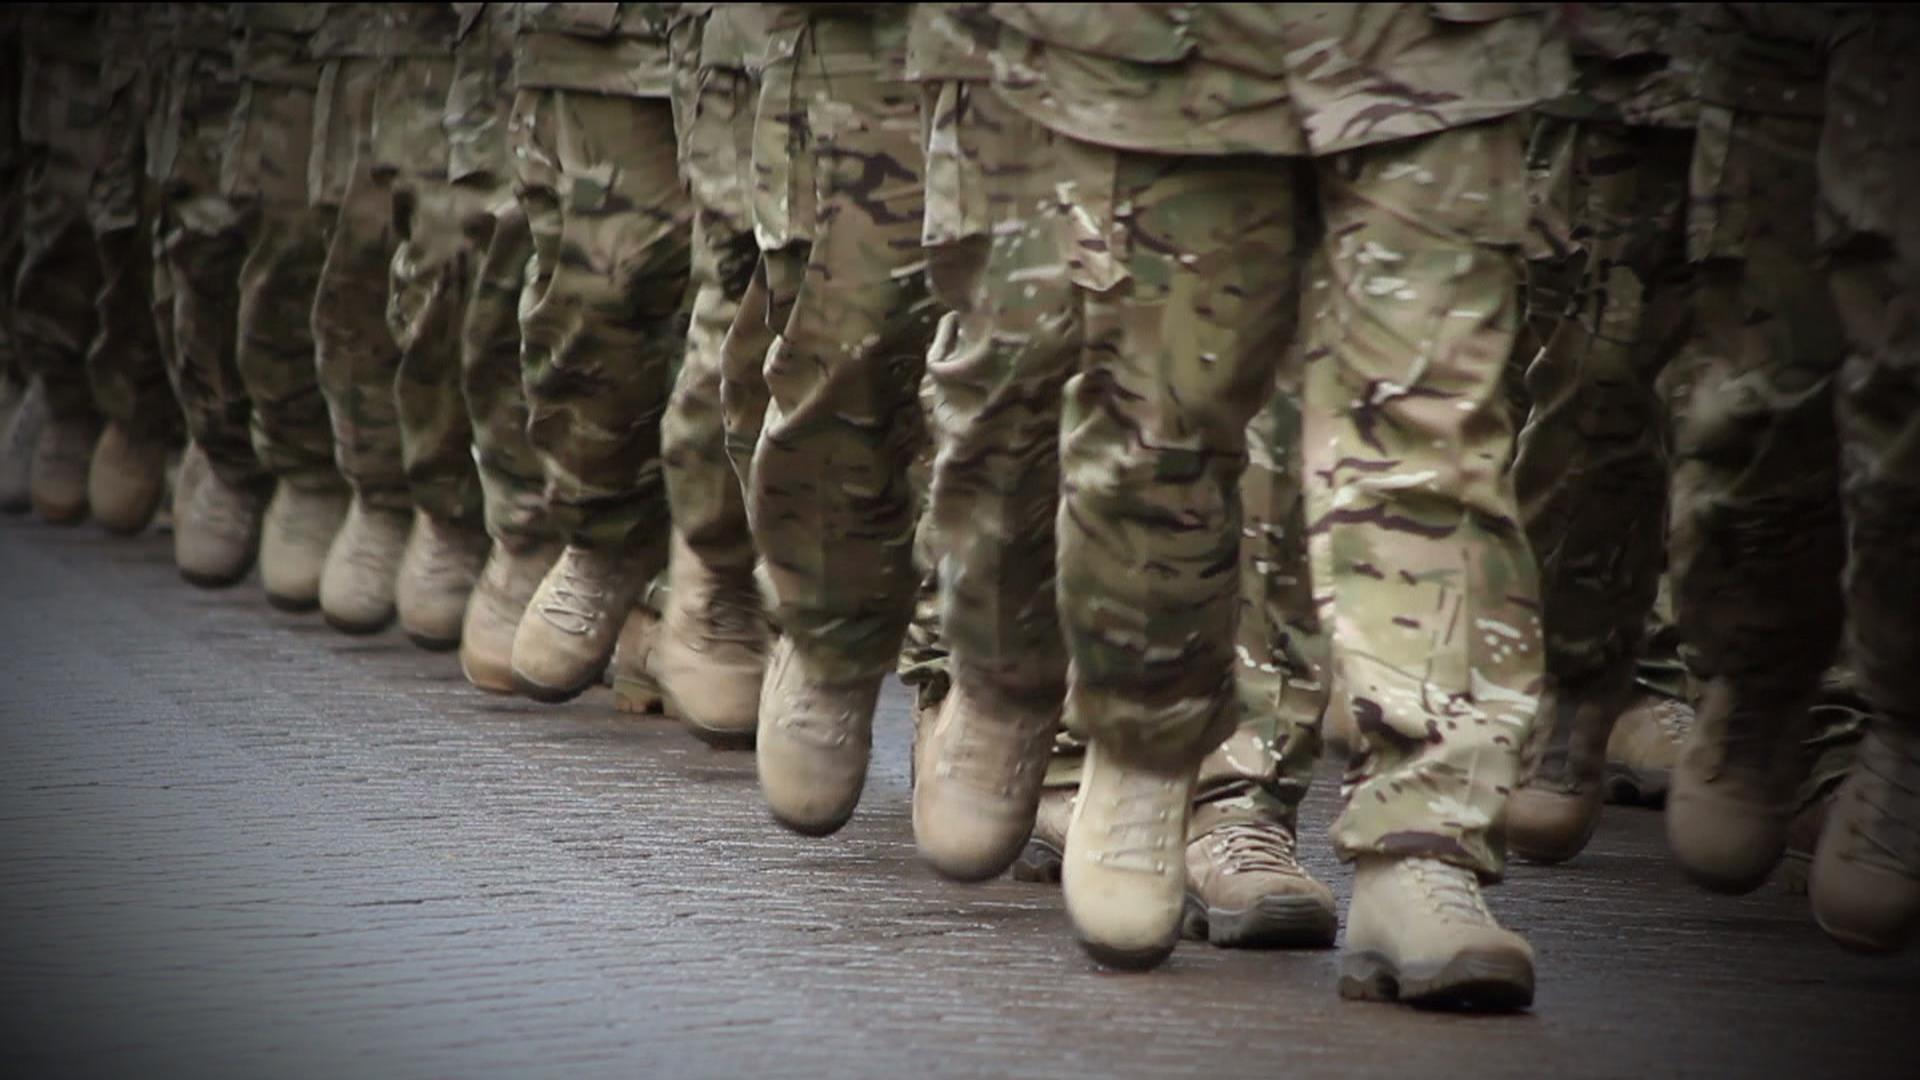 military photo scandal widens as more nude photos of female service